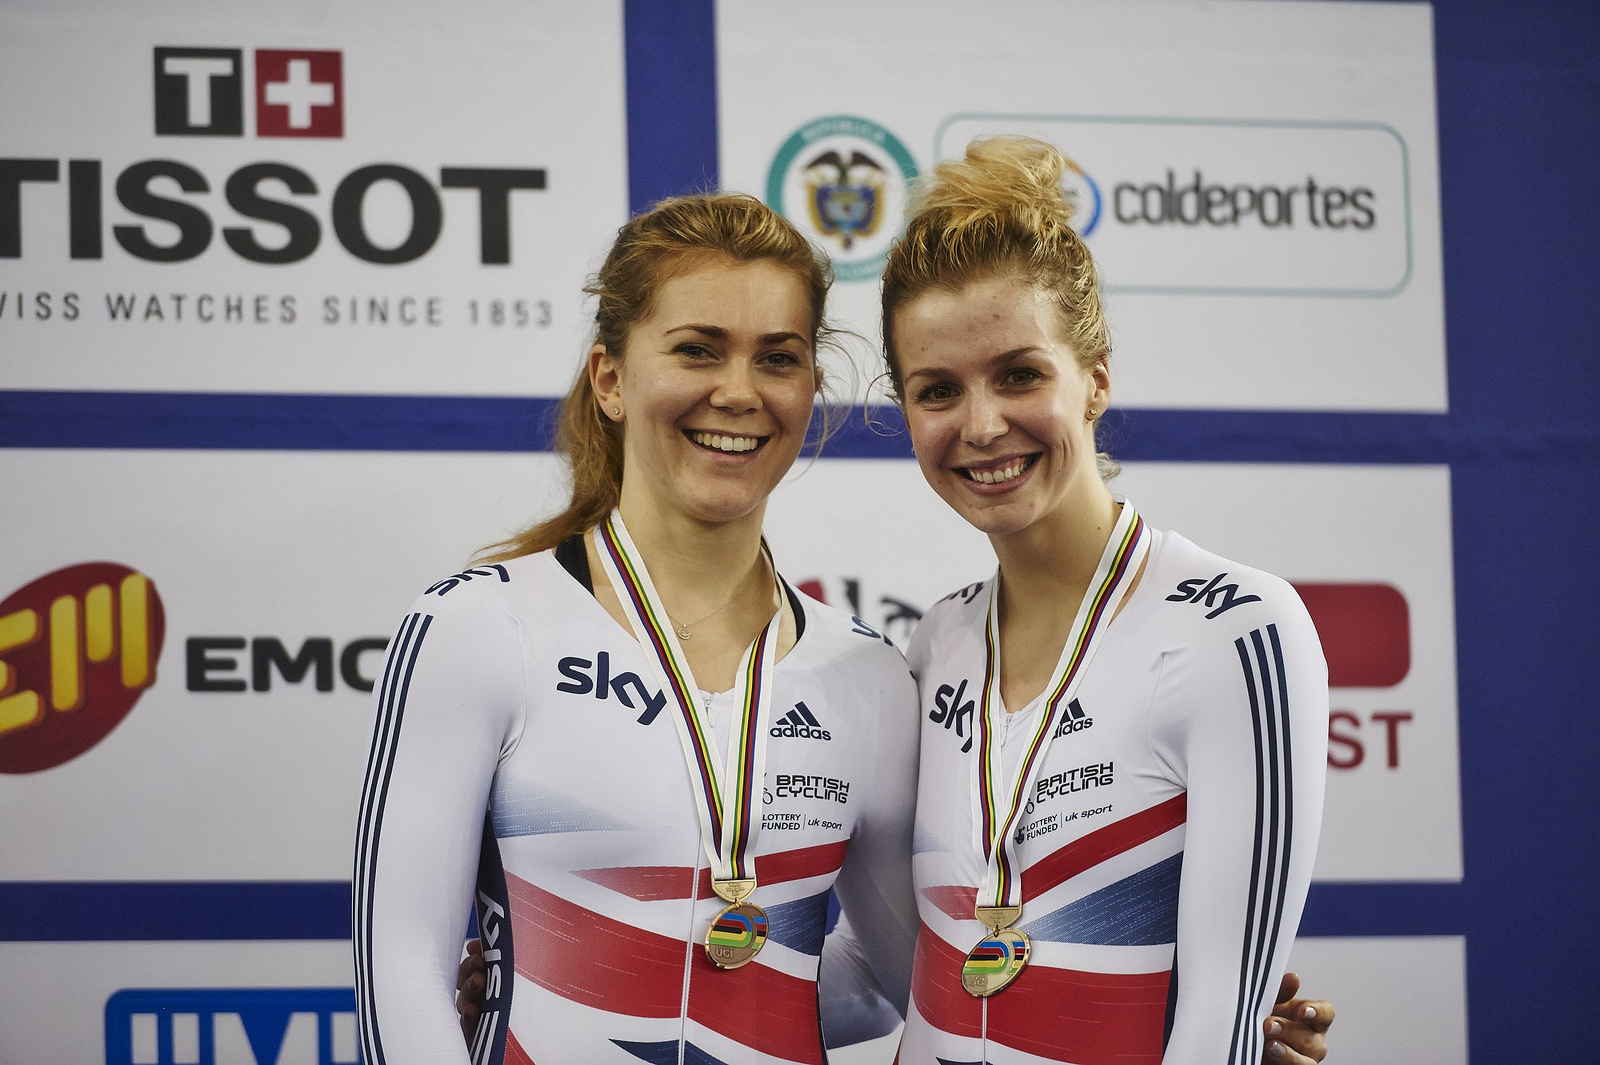 Jessica Varnish (left) and Becky James with their bronze meda